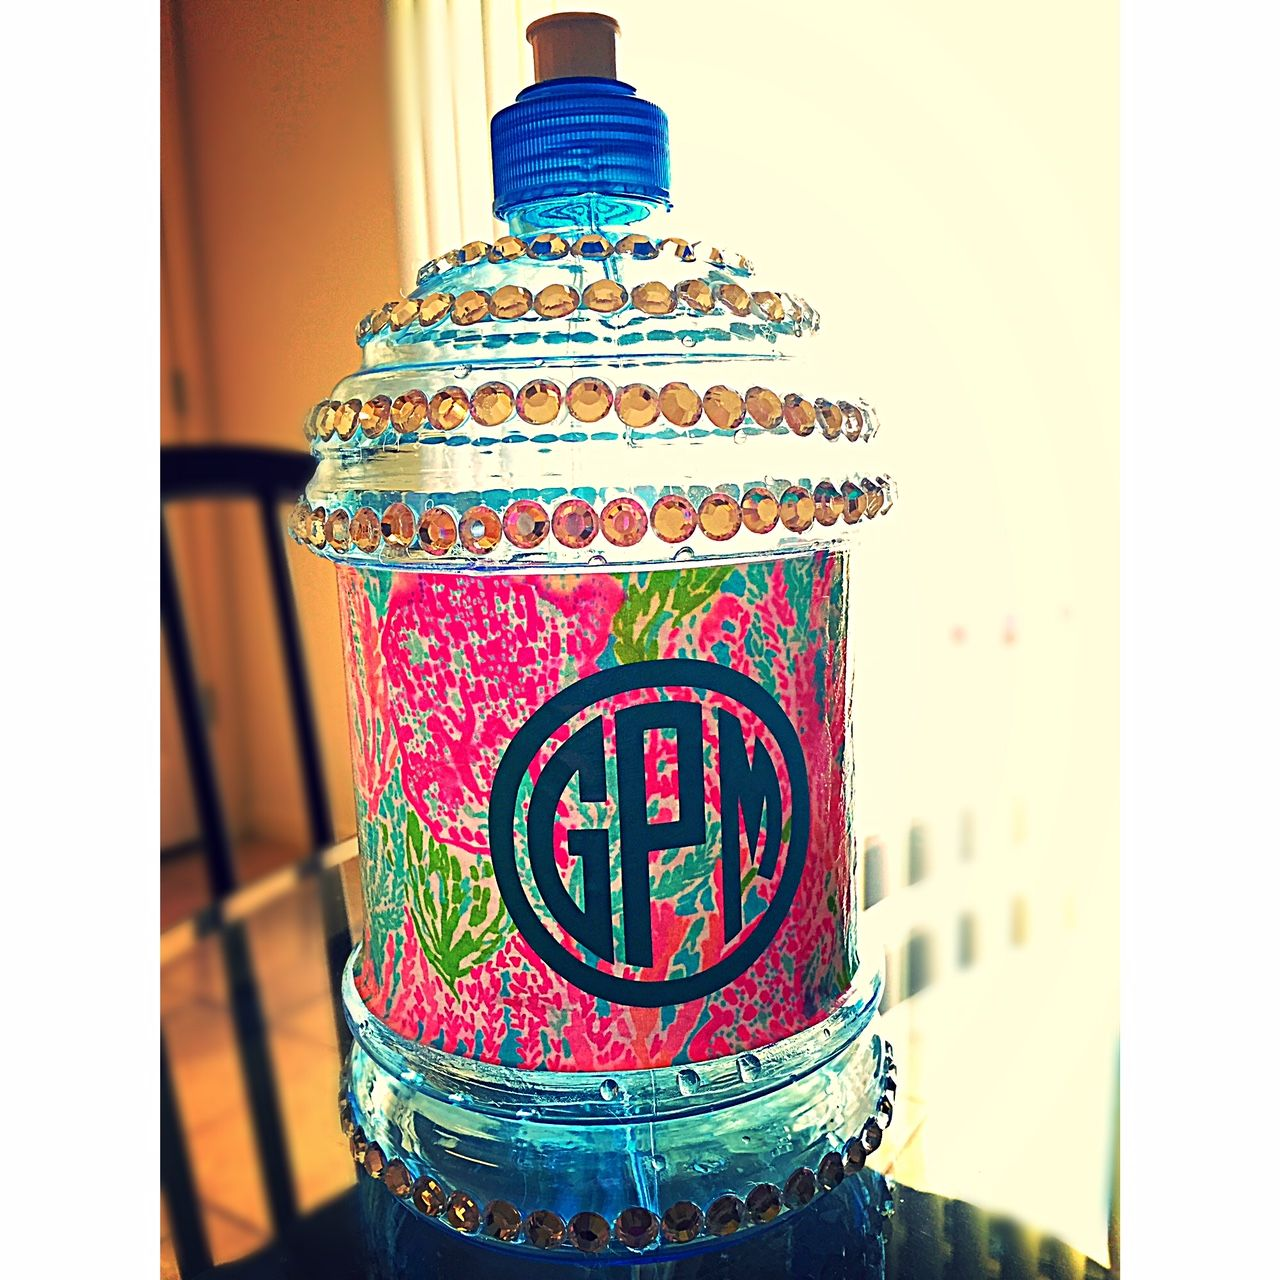 Decorate A Bottle: Spring Break Decorated Water Bottle! #monogram #lilly